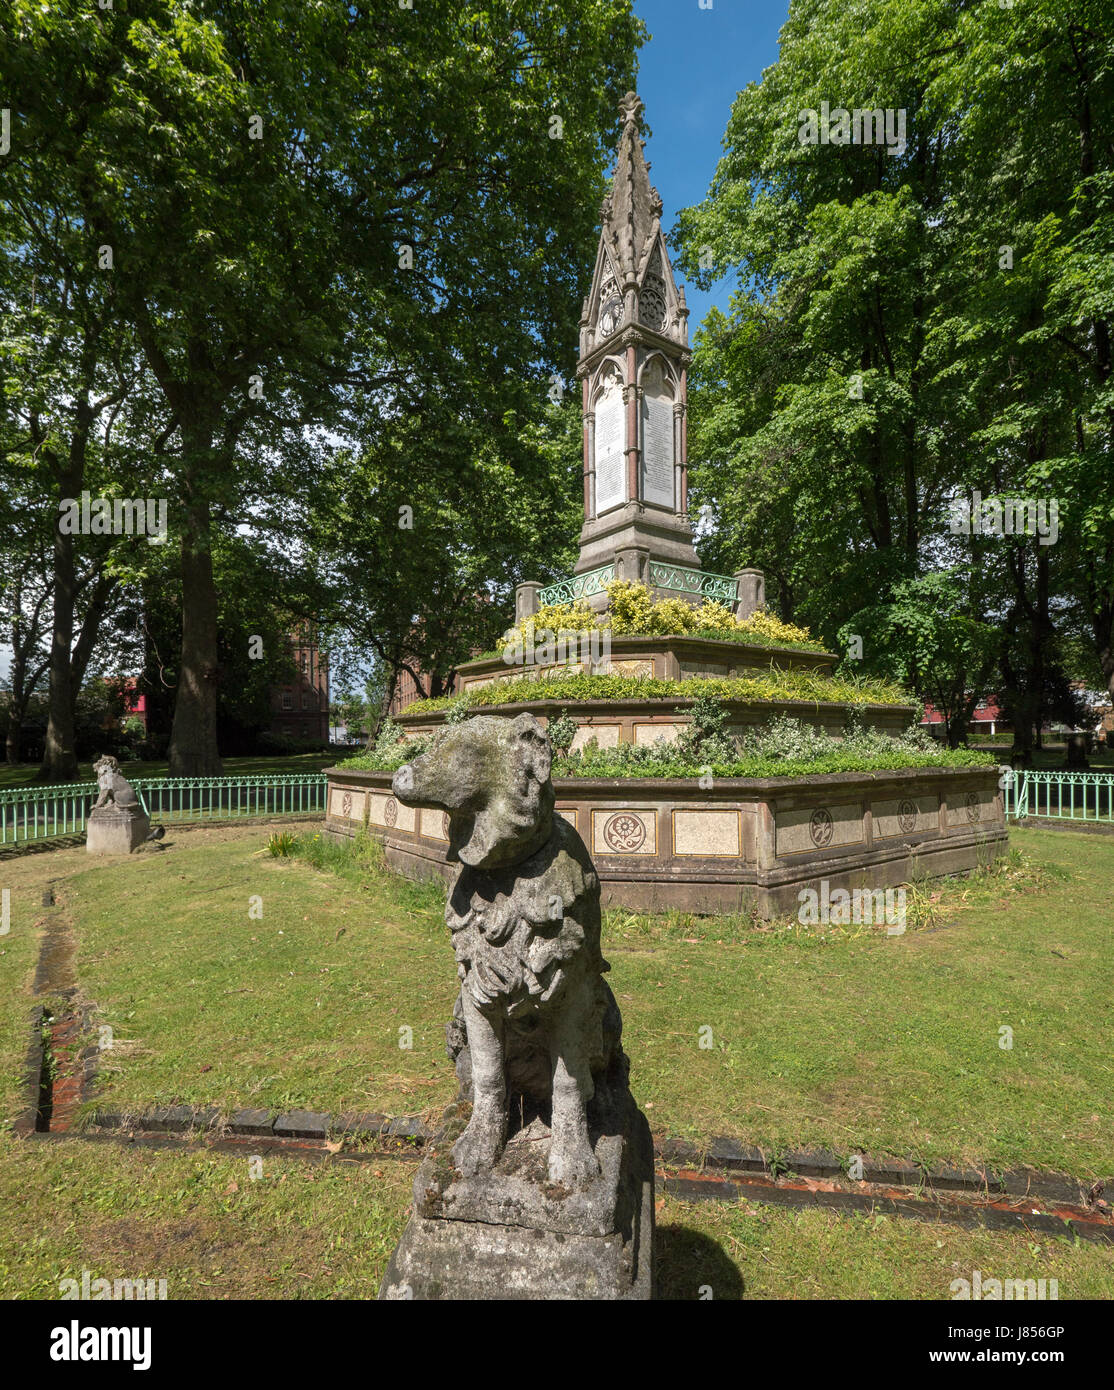 Memorial to Angela Burdett-Coutts, a wealthy 19th century aristocratic philanthropist in St Pancras Old Church cemetery Stock Photo